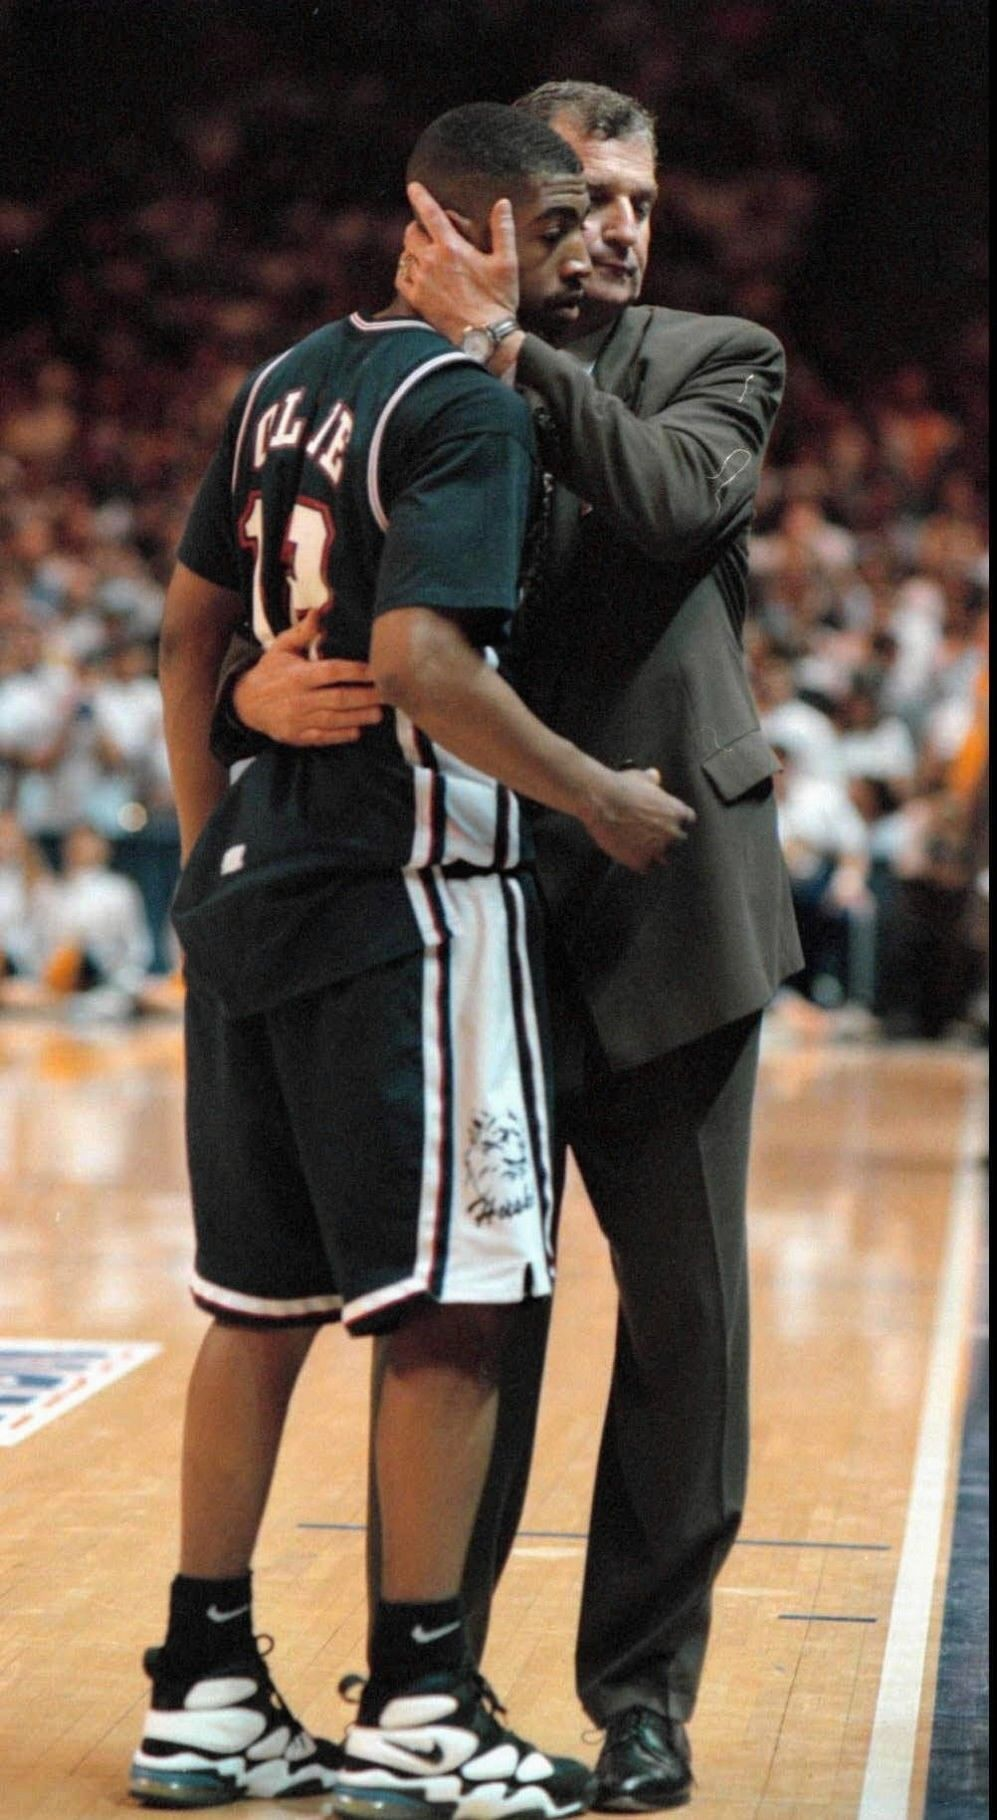 UConn's Jim Calhoun, Kevin Ollie Featured Together In An